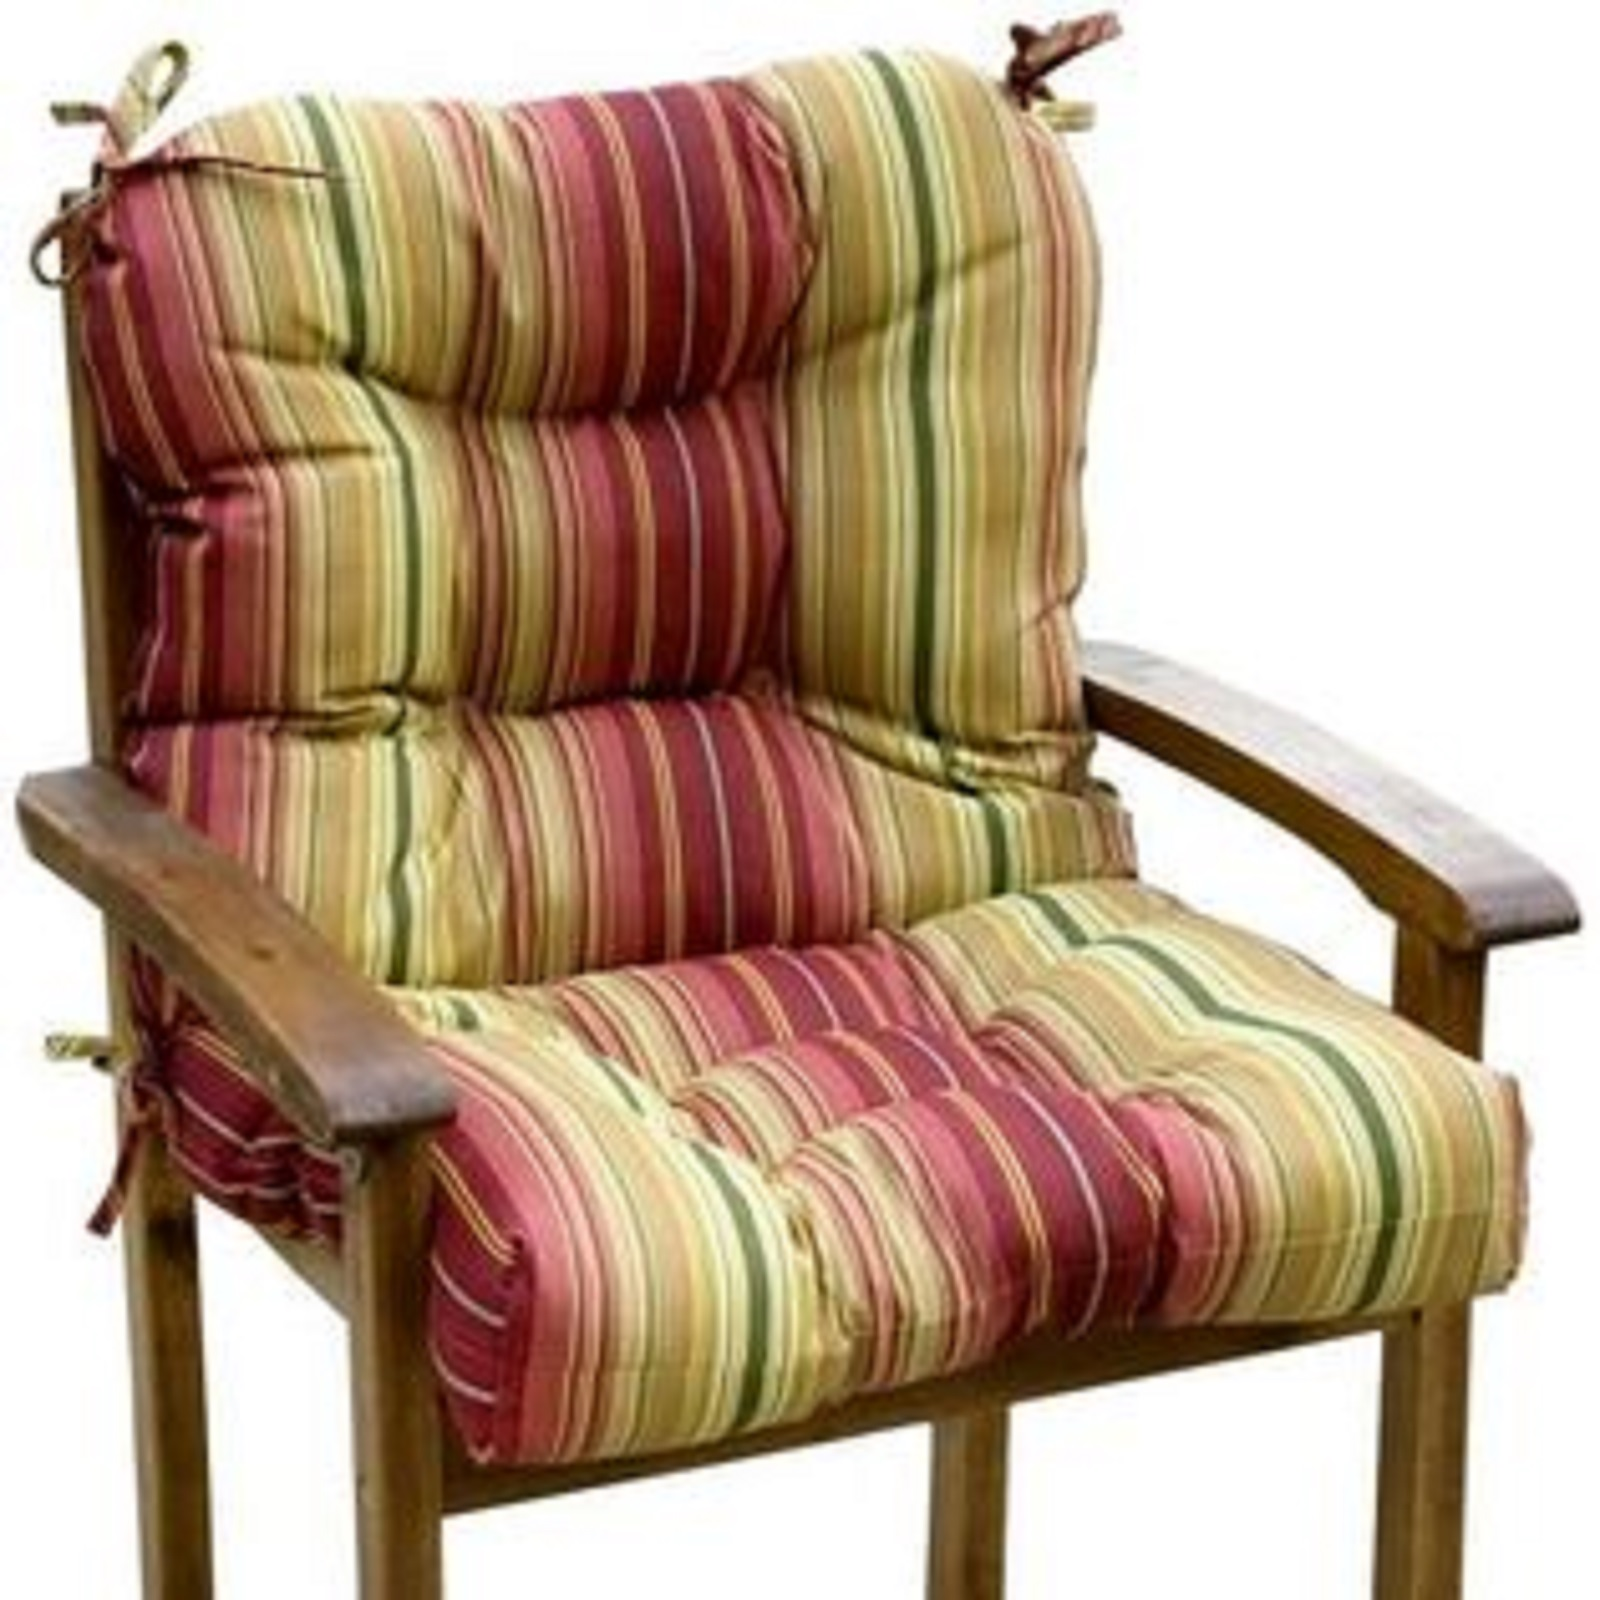 dining chair cushions kmart swivel rocker recliner leather greendale home fashions outdoor seat back cushion